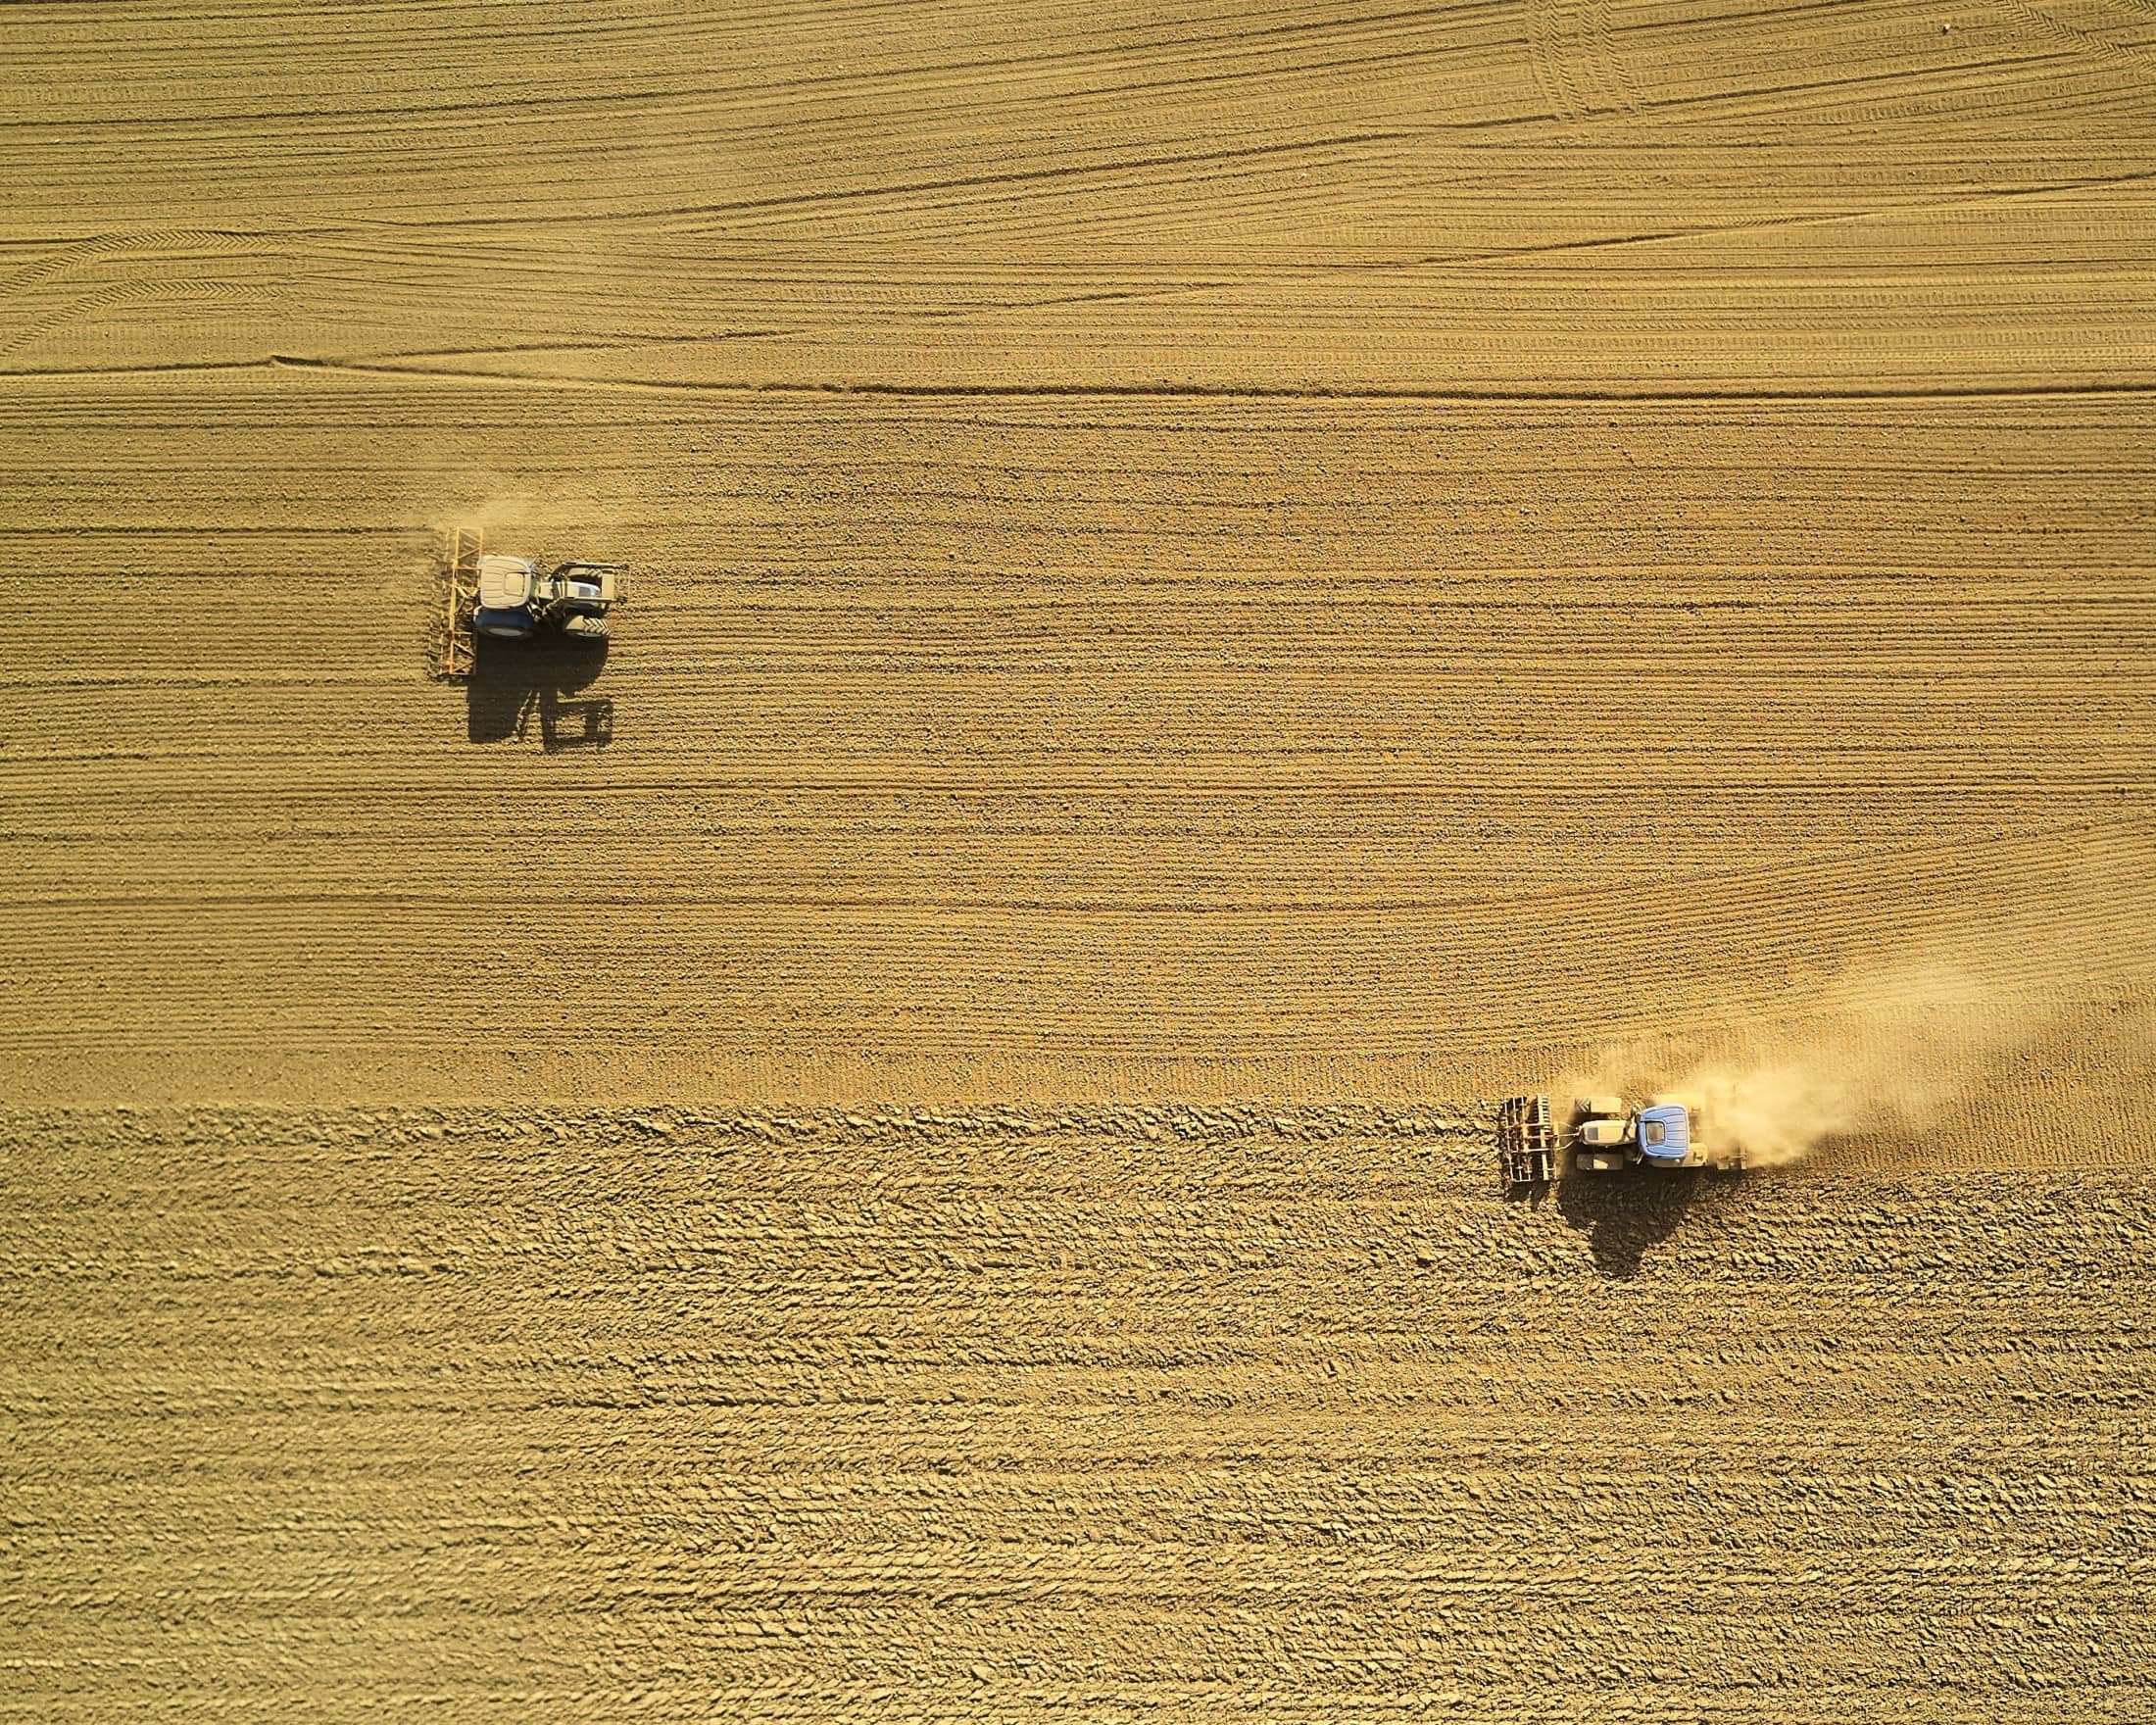 Farmers during harvest time